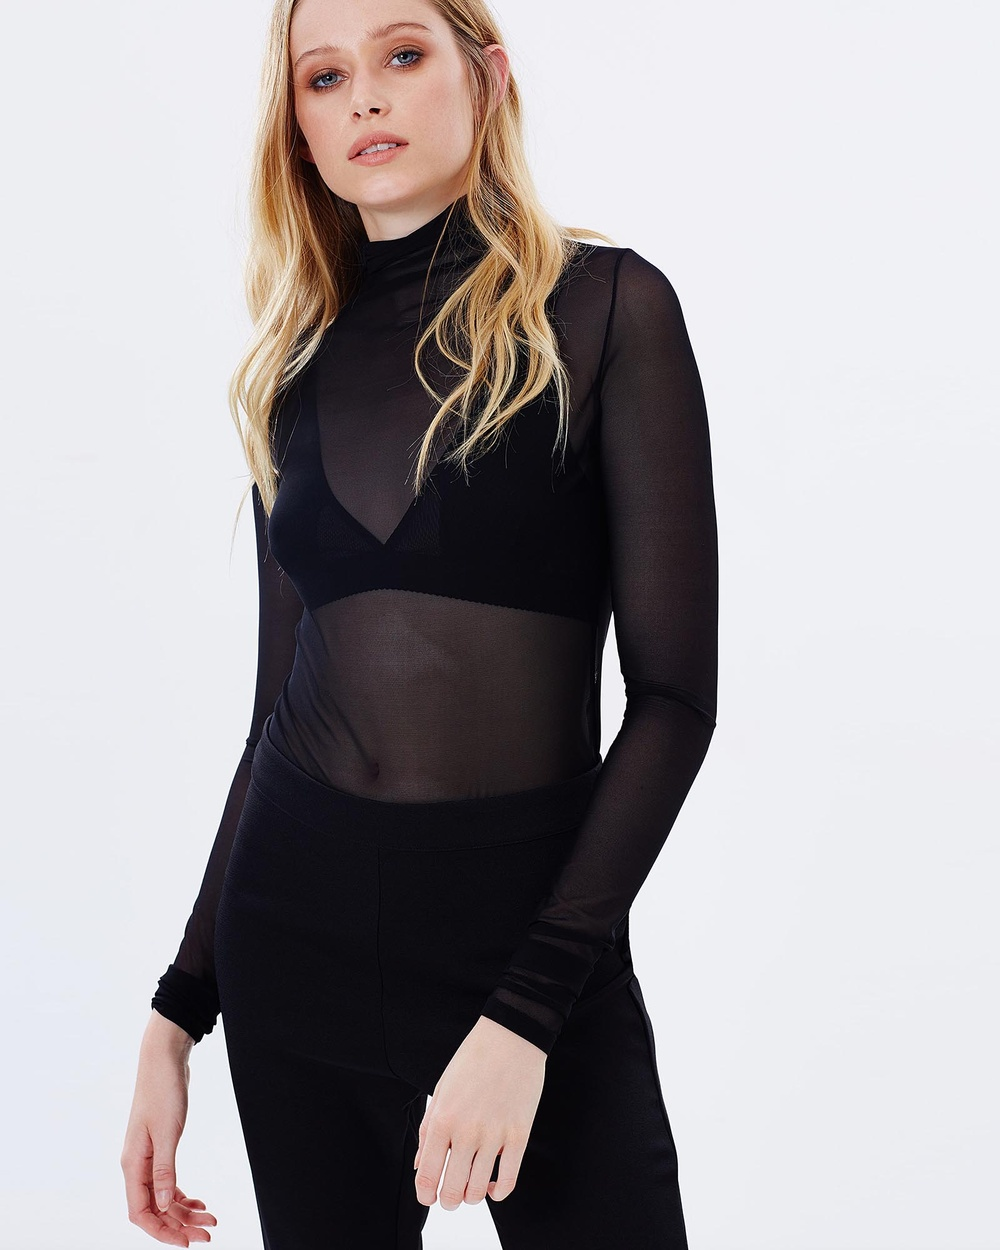 Serpent & the Swan Mesh Roll Neck Top Tops Black Mesh Roll Neck Top